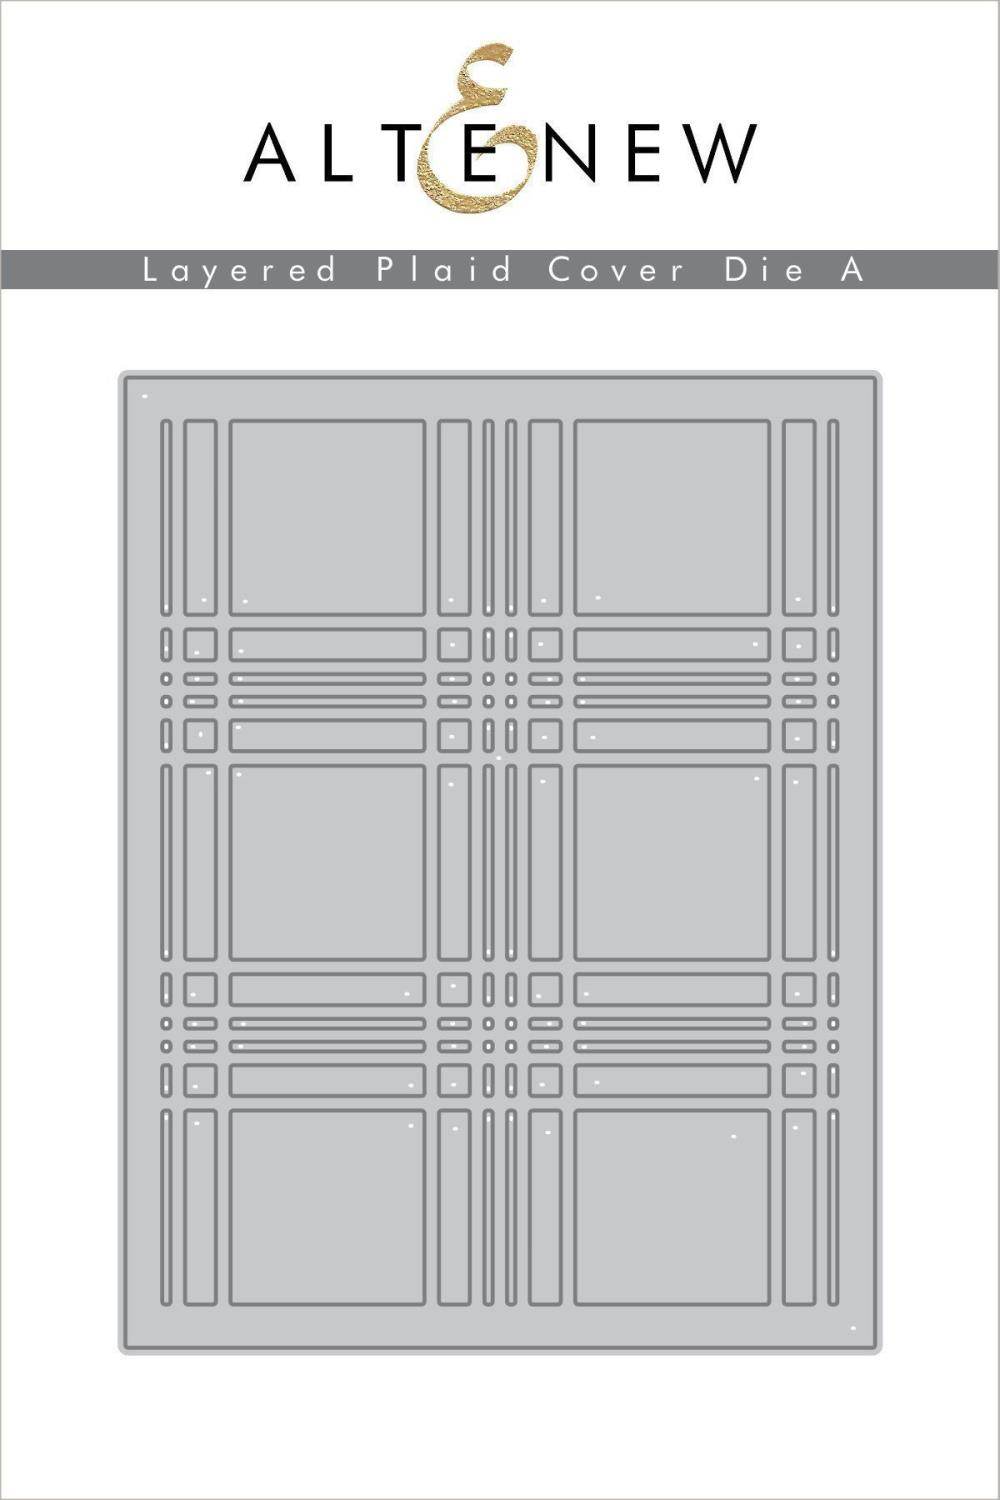 Altenew - Layered Plaid Cover Die A